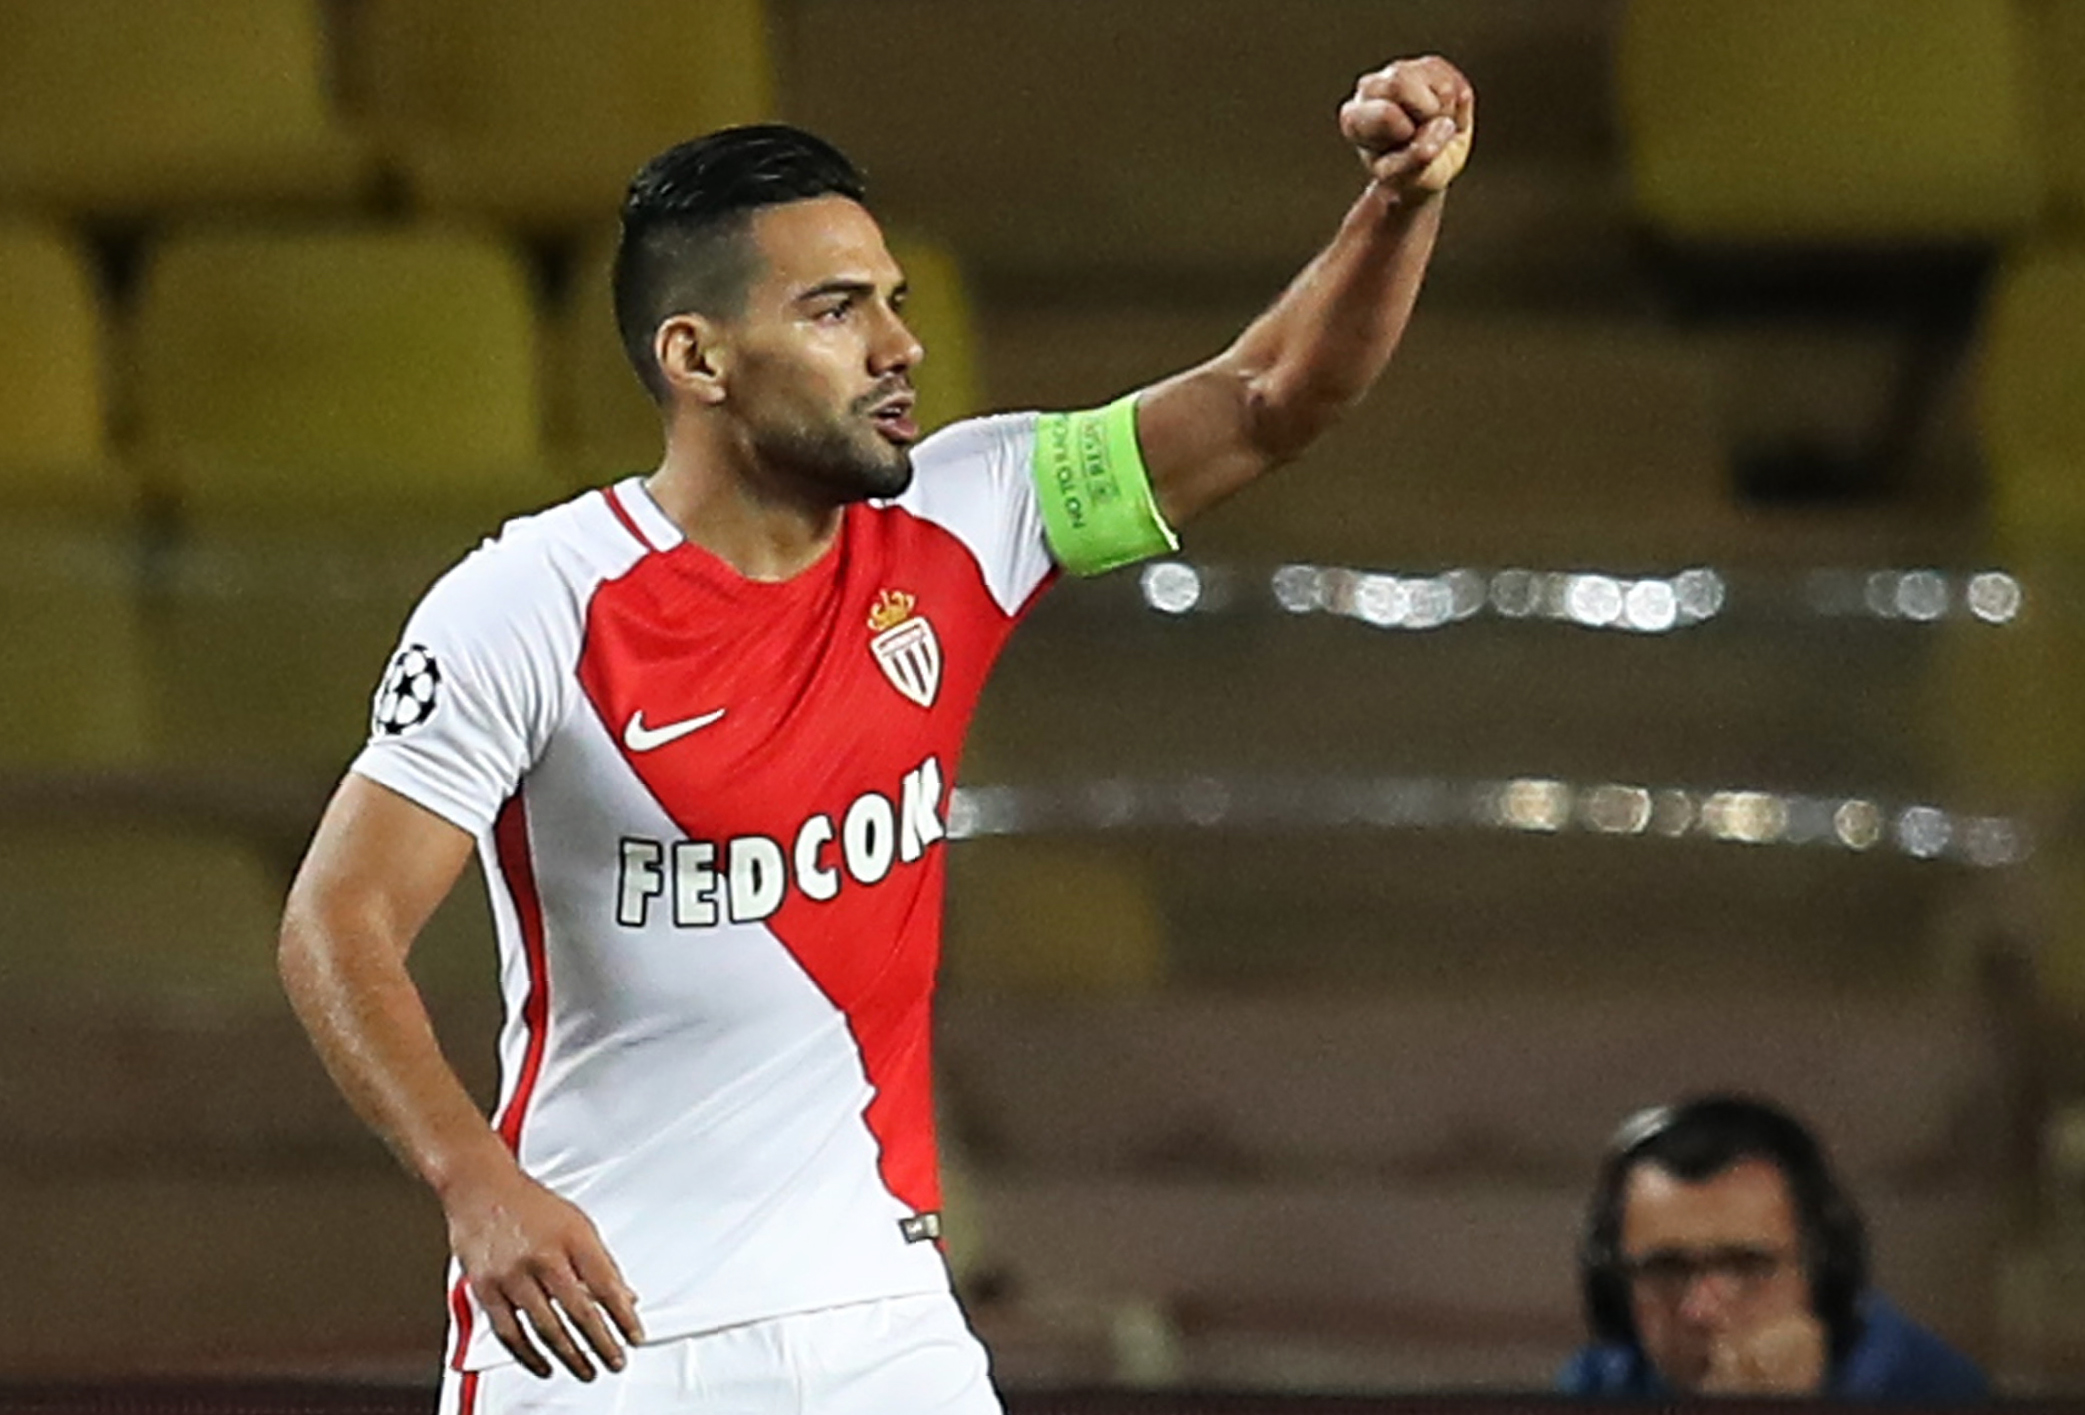 Manchester United and Chelsea flop Radamel Falcao ends 2450 day Champions League goal drought